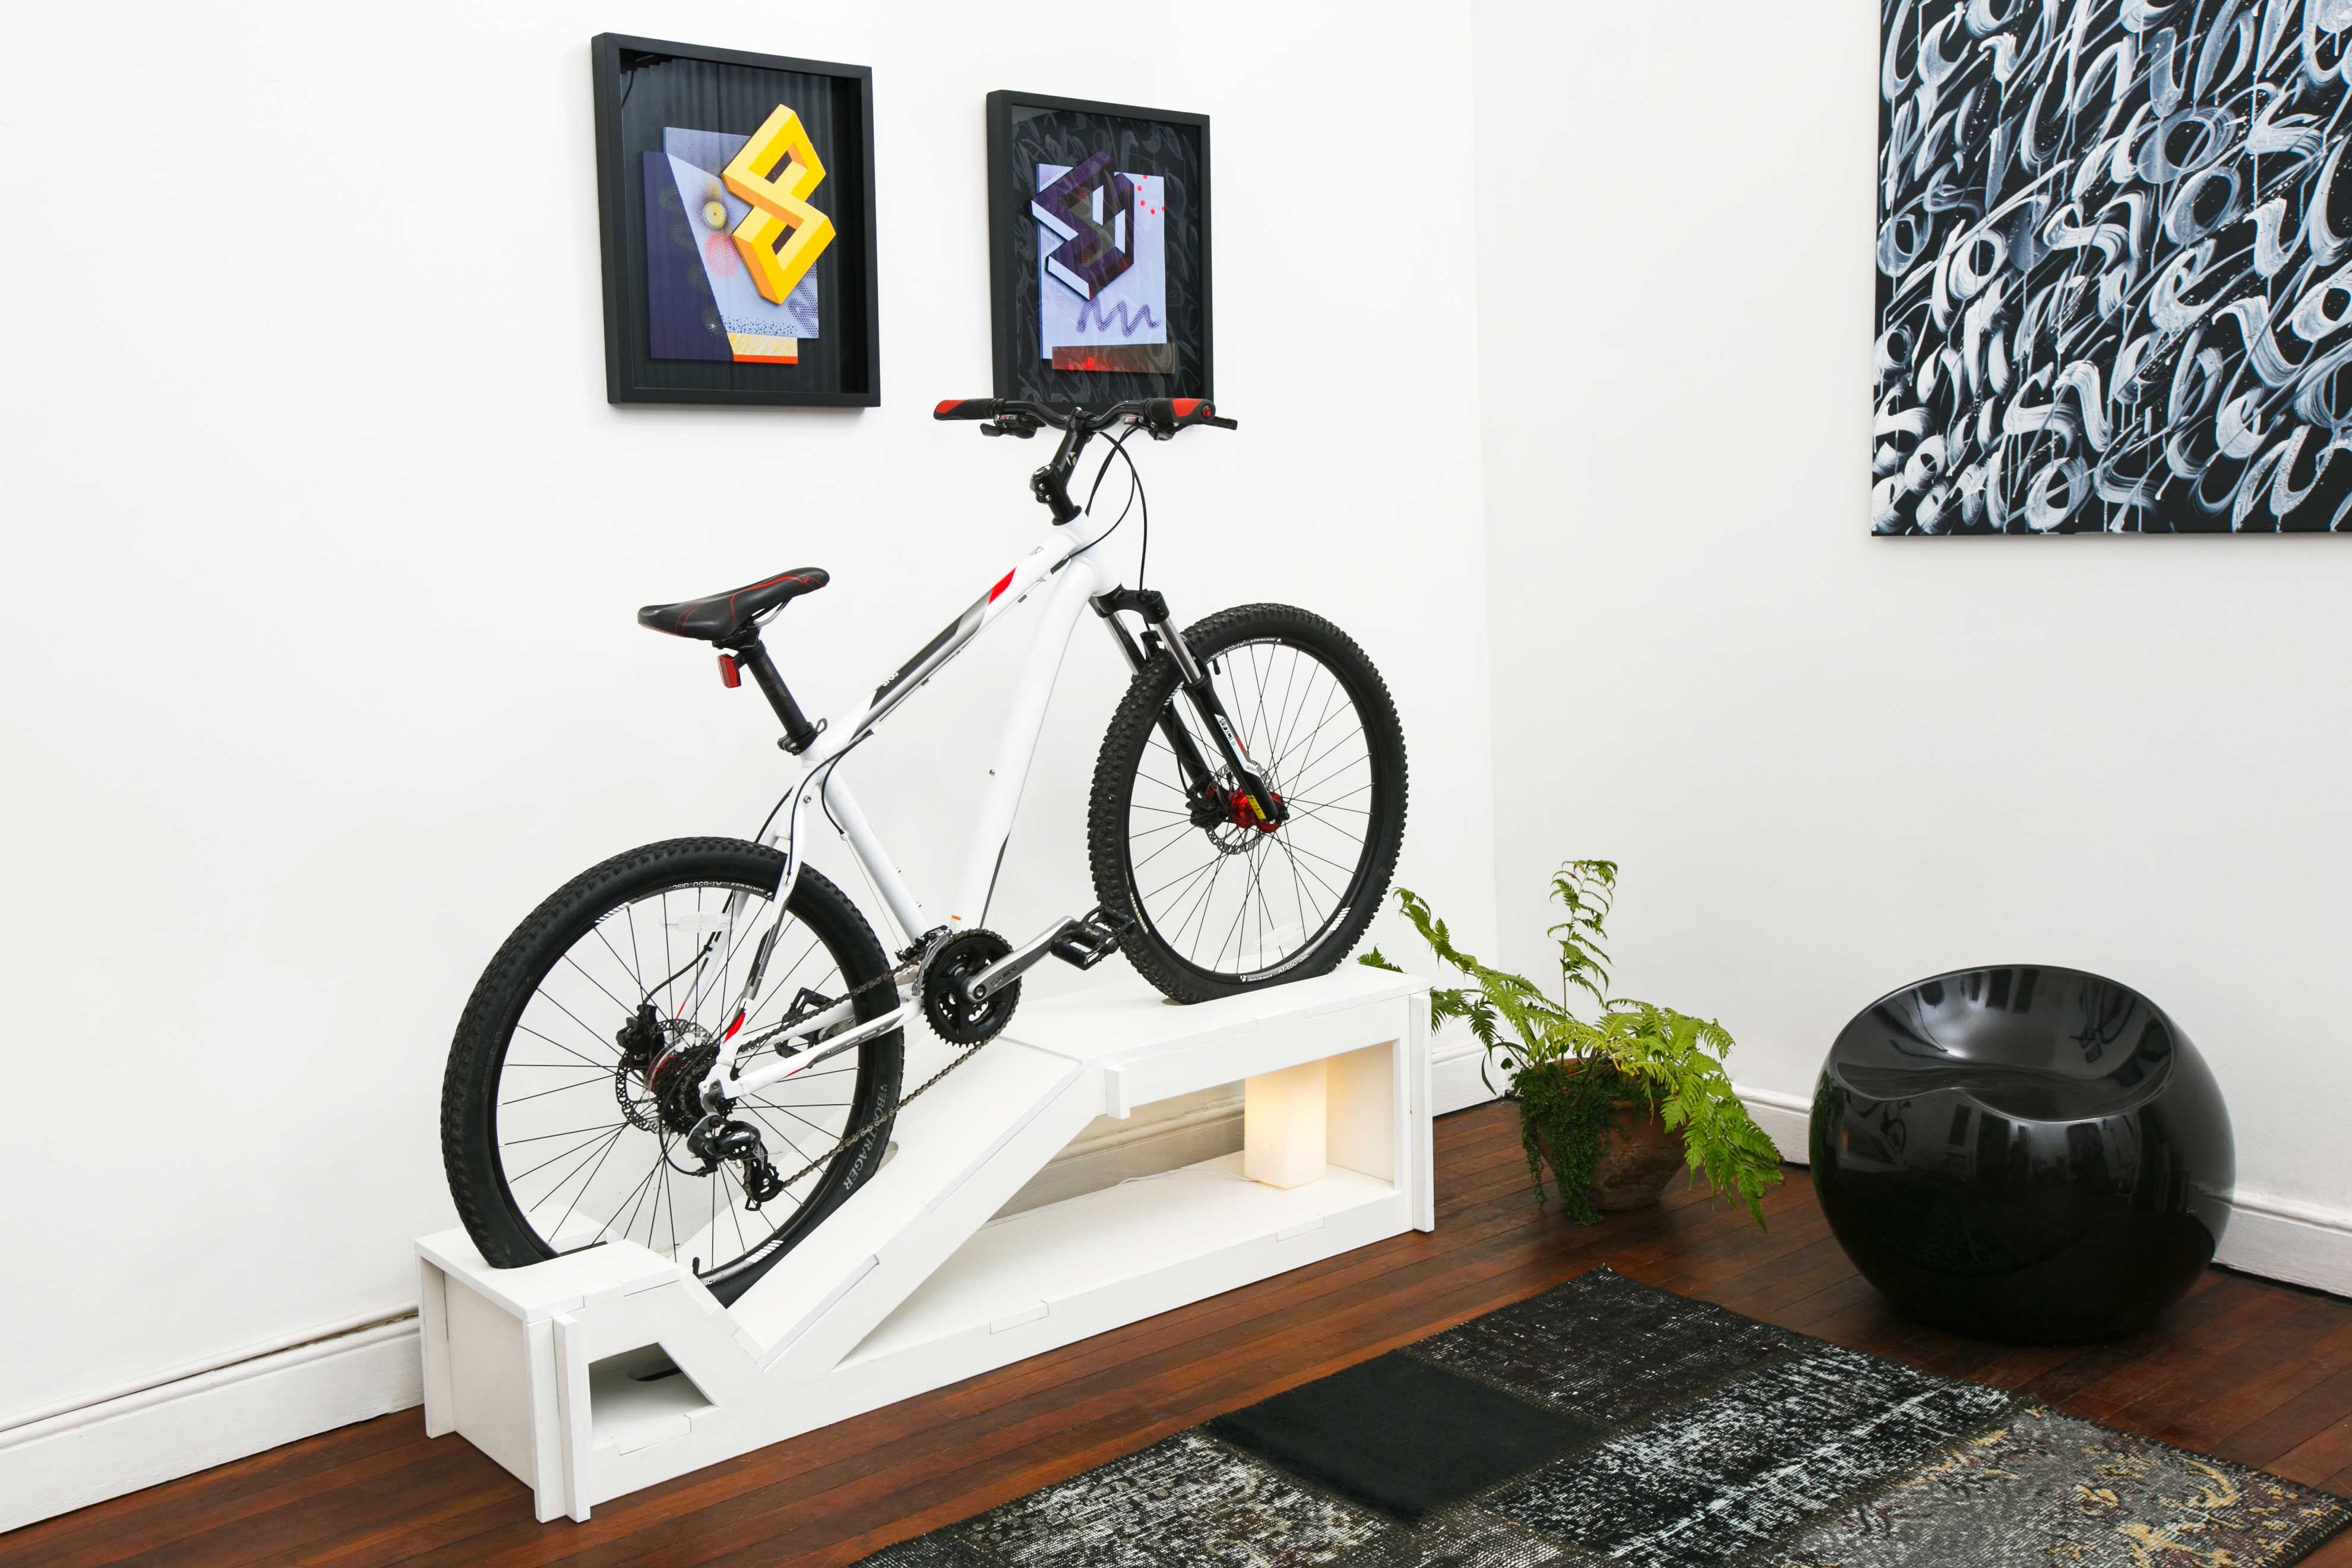 youtube hanging how easy build own this stands the your mount wonderful ideas garage bicycle storage review most mounted gear up etrailercom diy vertical make cheap doors plans shelves rack of a wall wooden largest bike and to with